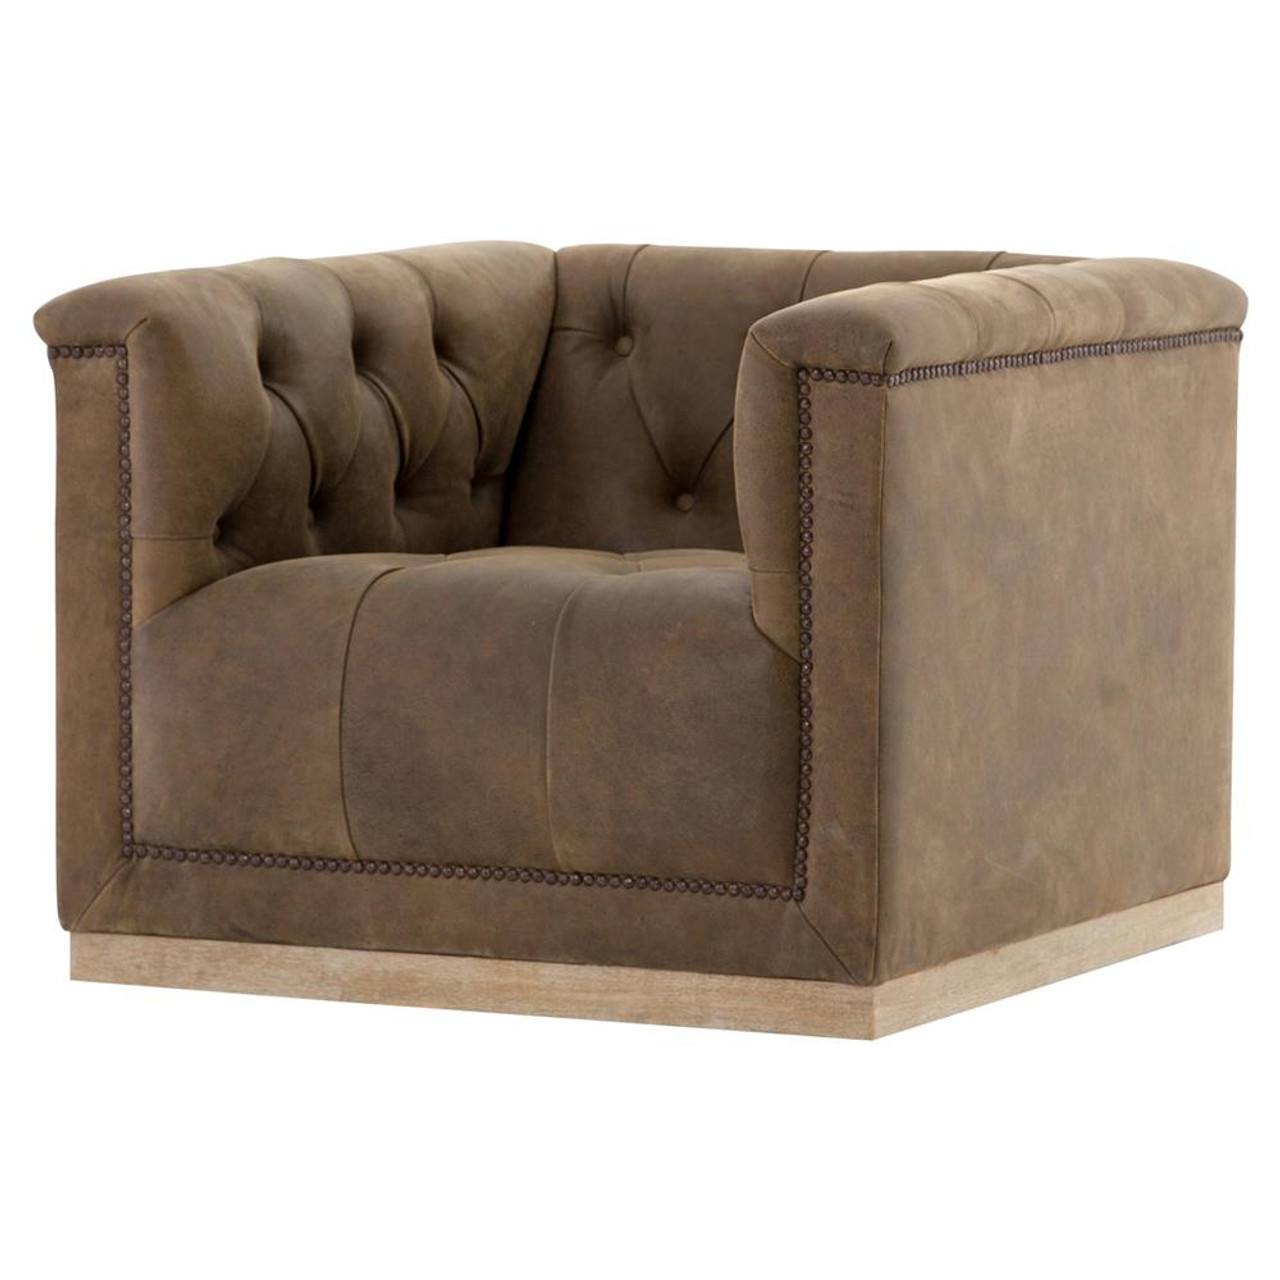 Maxx Distressed Tufted Leather Swivel Club Chair Zin Home